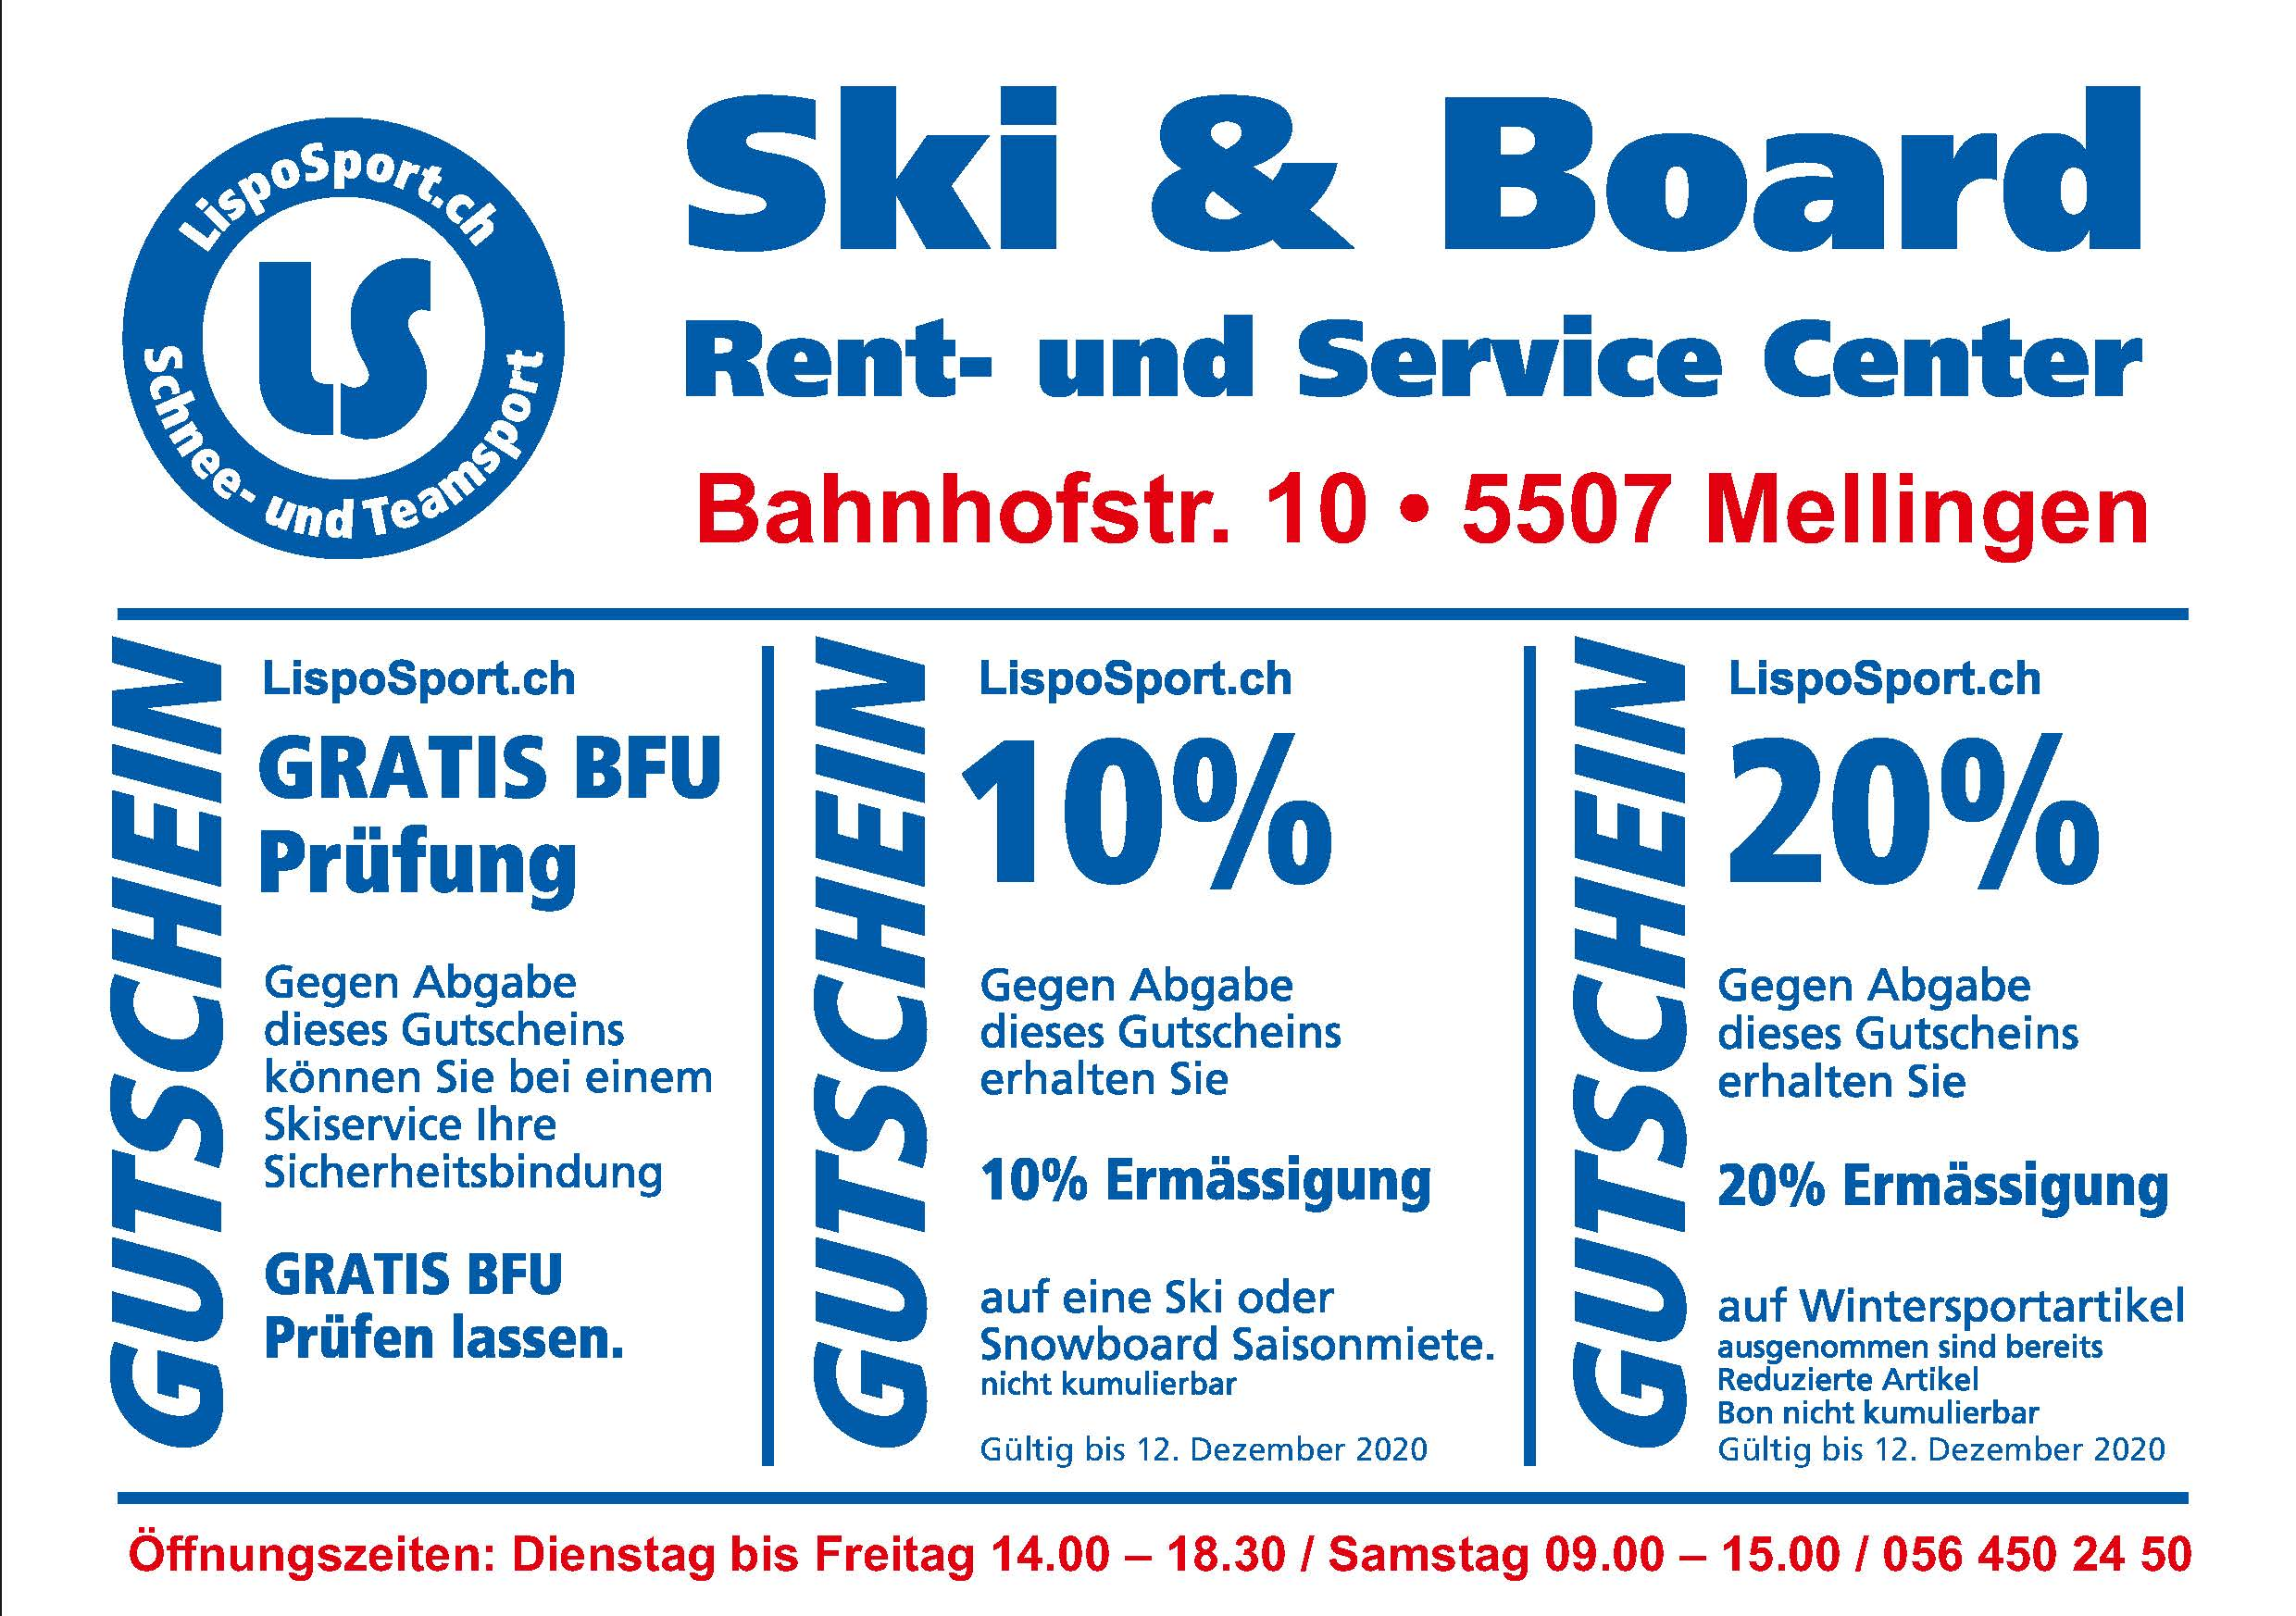 Ski Board Rent- und Servicecenter